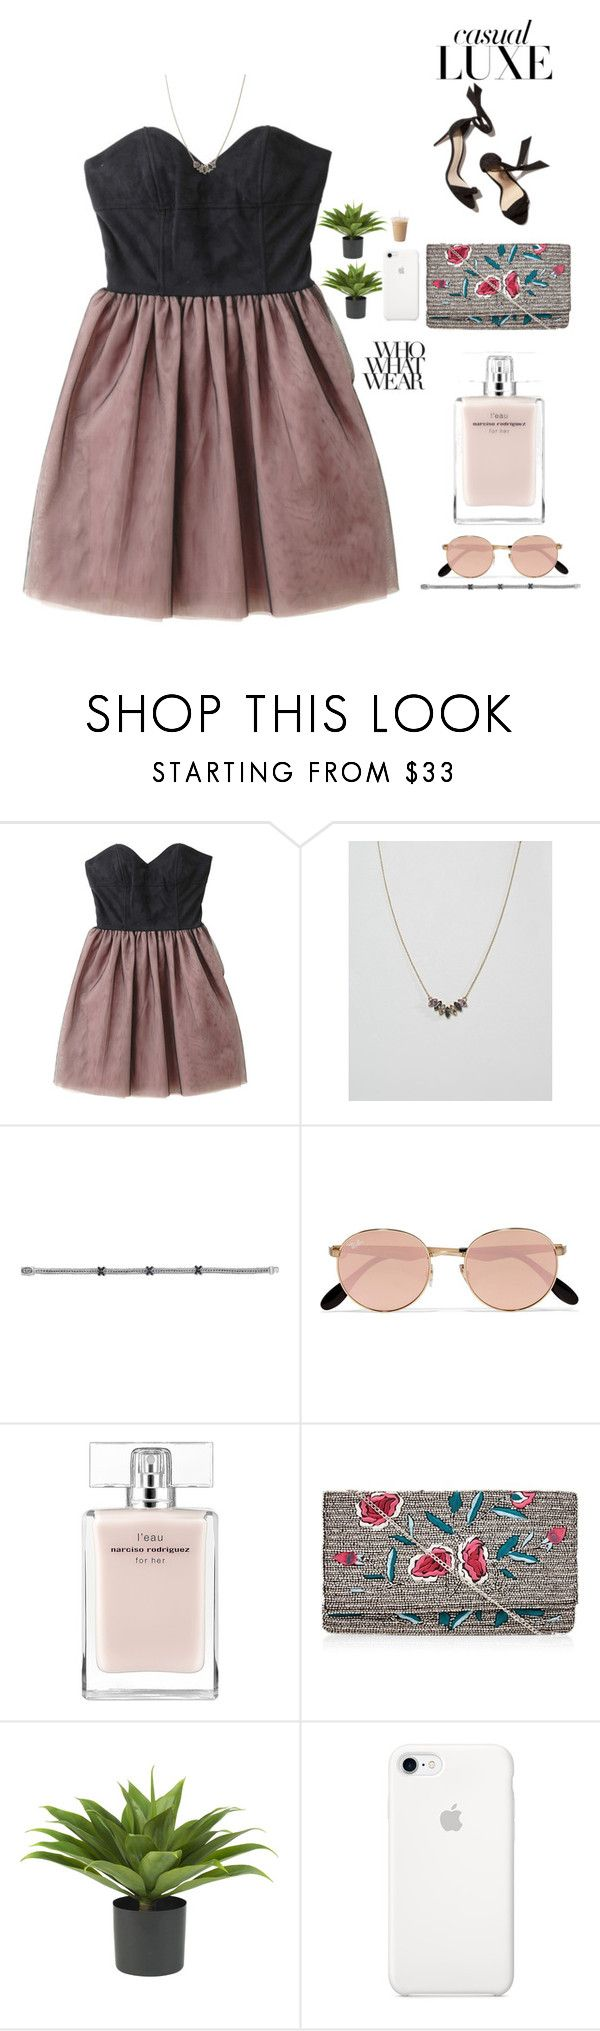 """""""10/10🕊"""" by nour20-17 ❤ liked on Polyvore featuring Johnny Loves Rosie, Phillip Gavriel, Ray-Ban, Narciso Rodriguez, New Look, Nearly Natural and Who What Wear"""